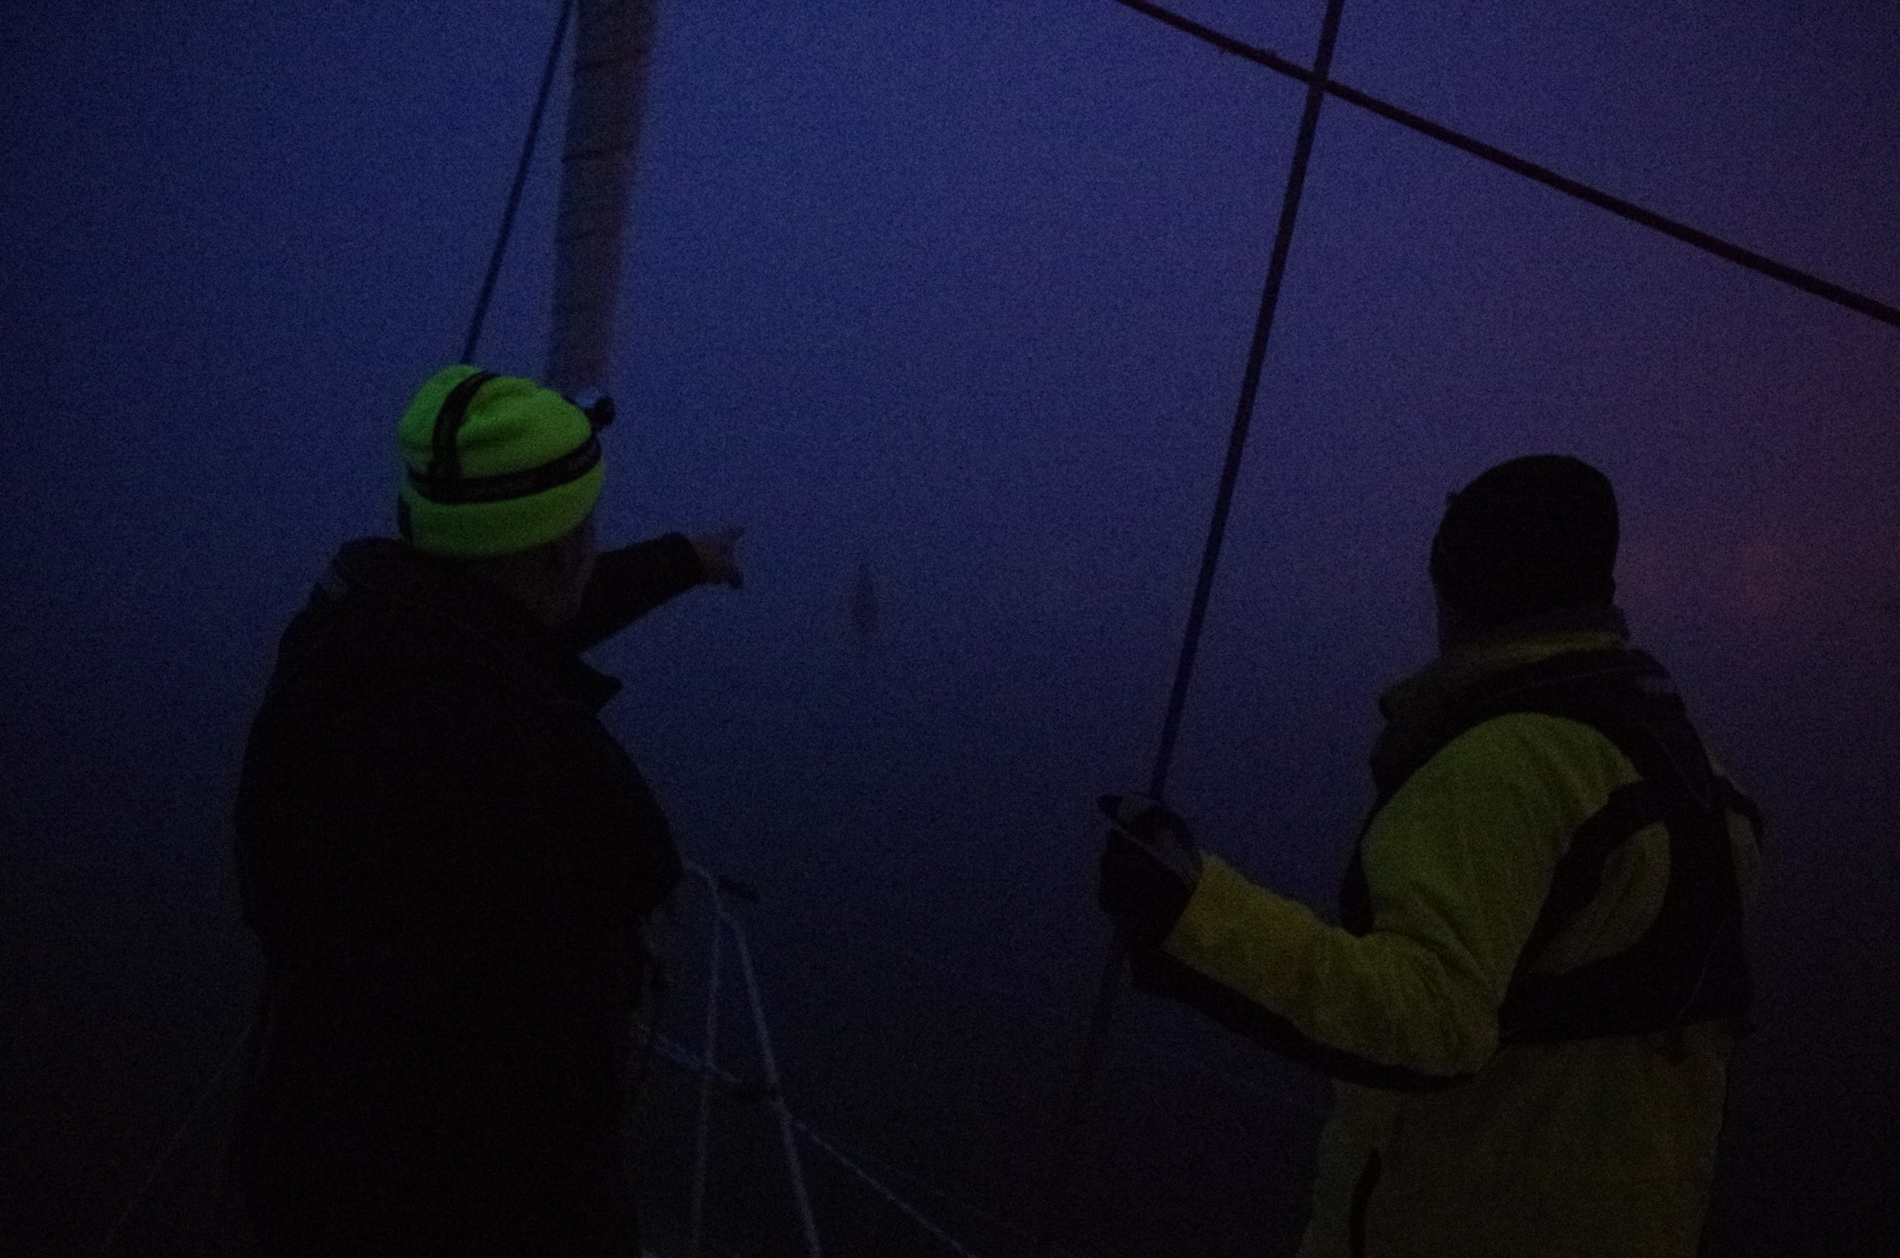 Dan (left) and Doug (right), spotting on the bow as we entered St. Pierre in the fog.